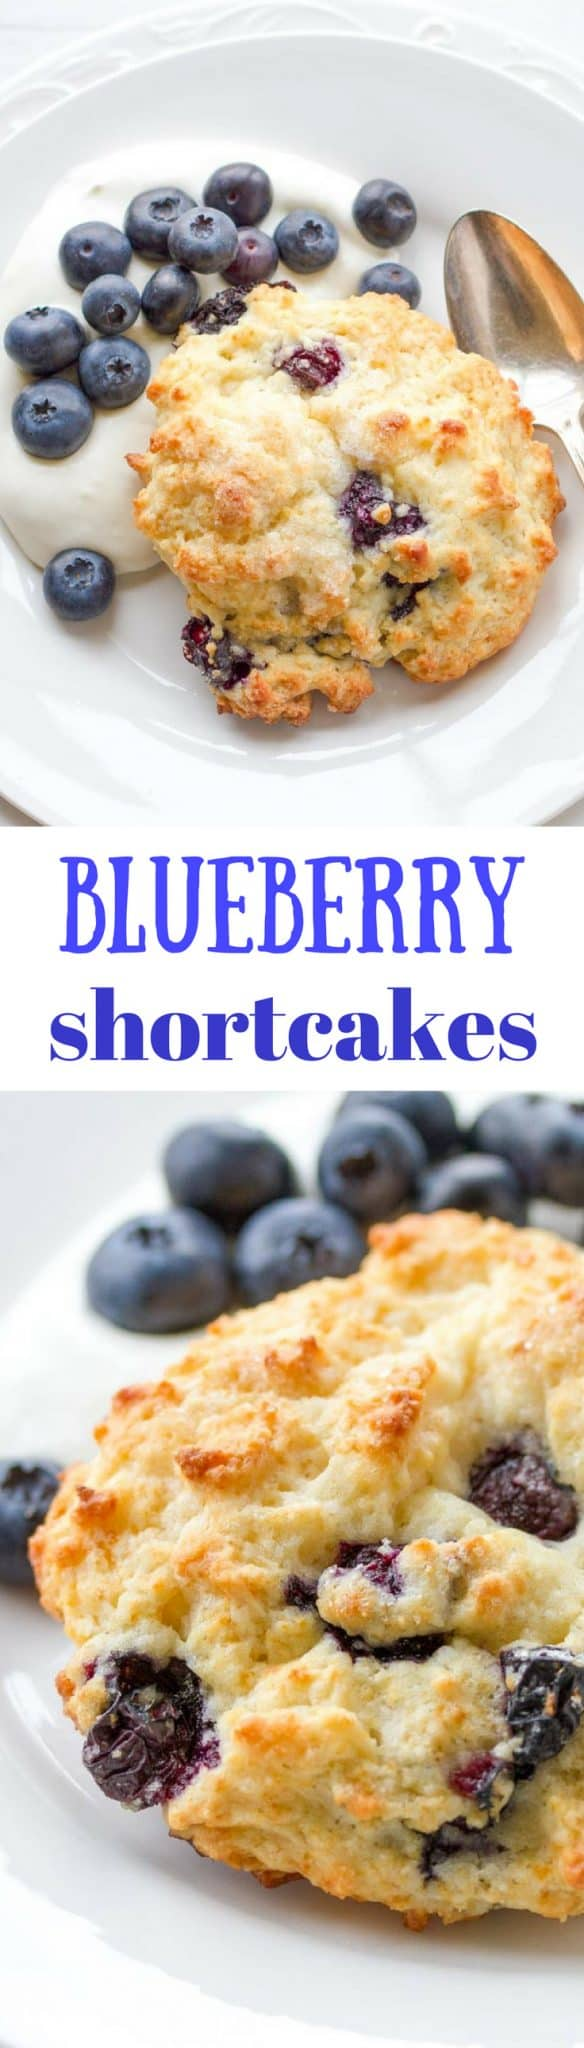 Blueberry Shortcakes with Whipped Cream Cheese ~ A lightly sweet and simple shortcake loaded with fresh, ripe blueberries, topped with raw sugar and served with cream cheese-whipped cream www.savingdessert.com